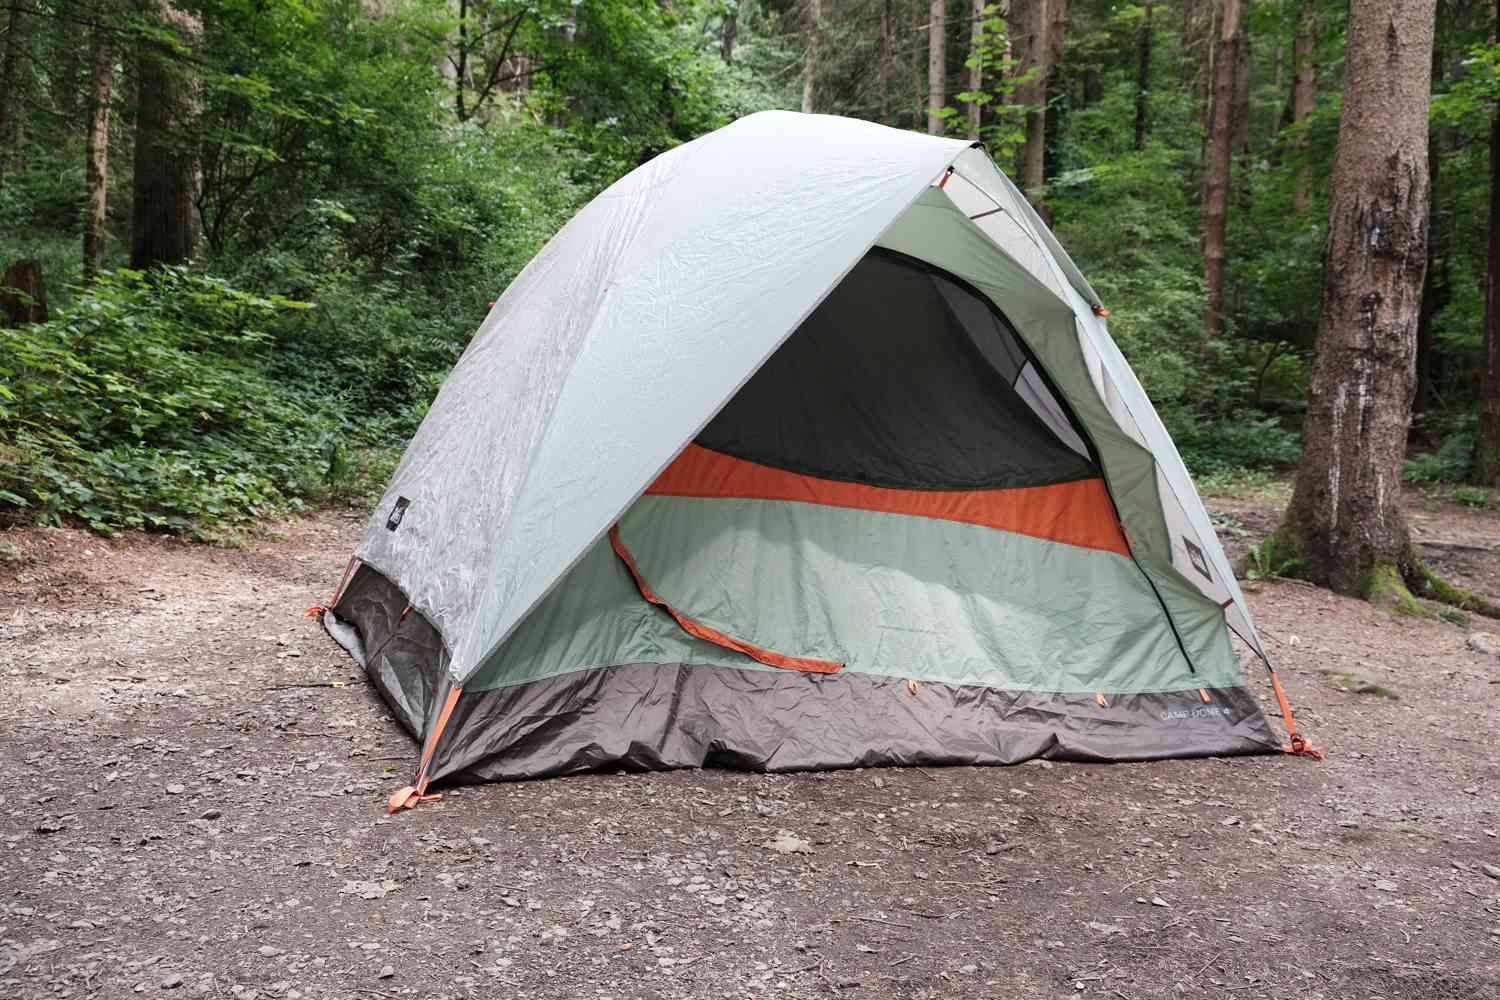 large pop-up camping tent is set up amongst tall trees in campground